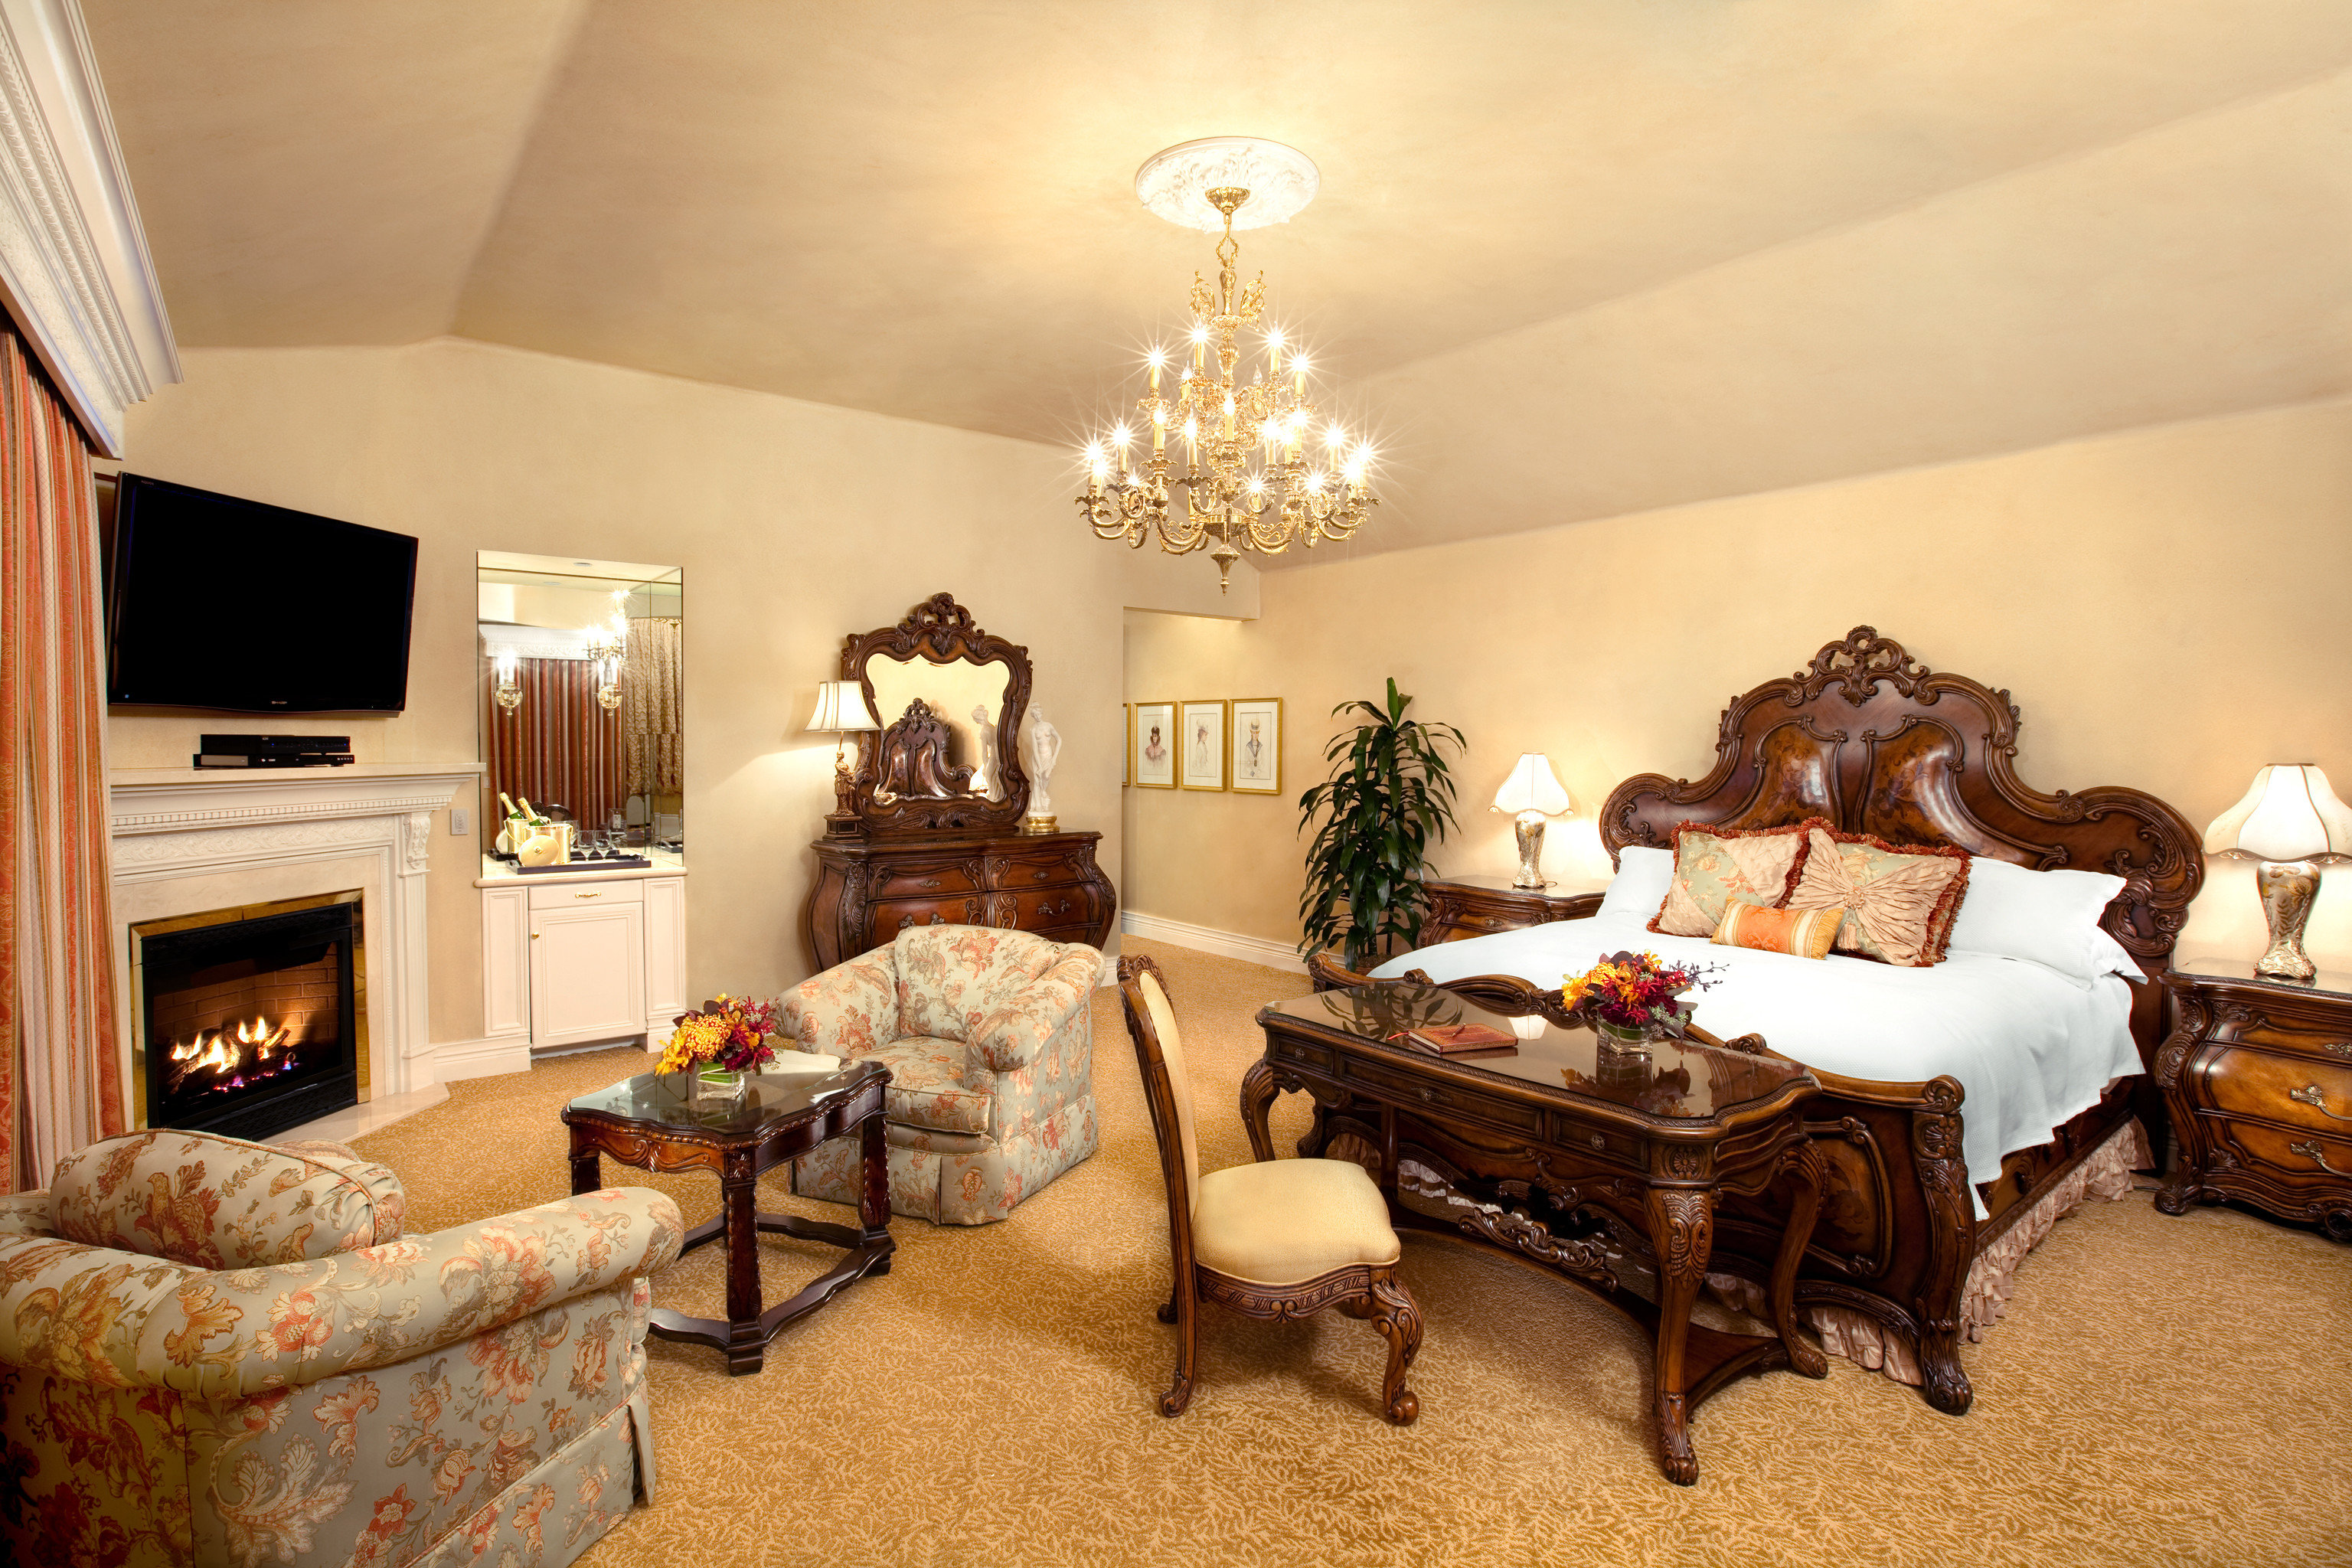 Bedroom Elegant Fireplace Historic Inn Romantic living room property home cottage Suite mansion farmhouse Villa containing